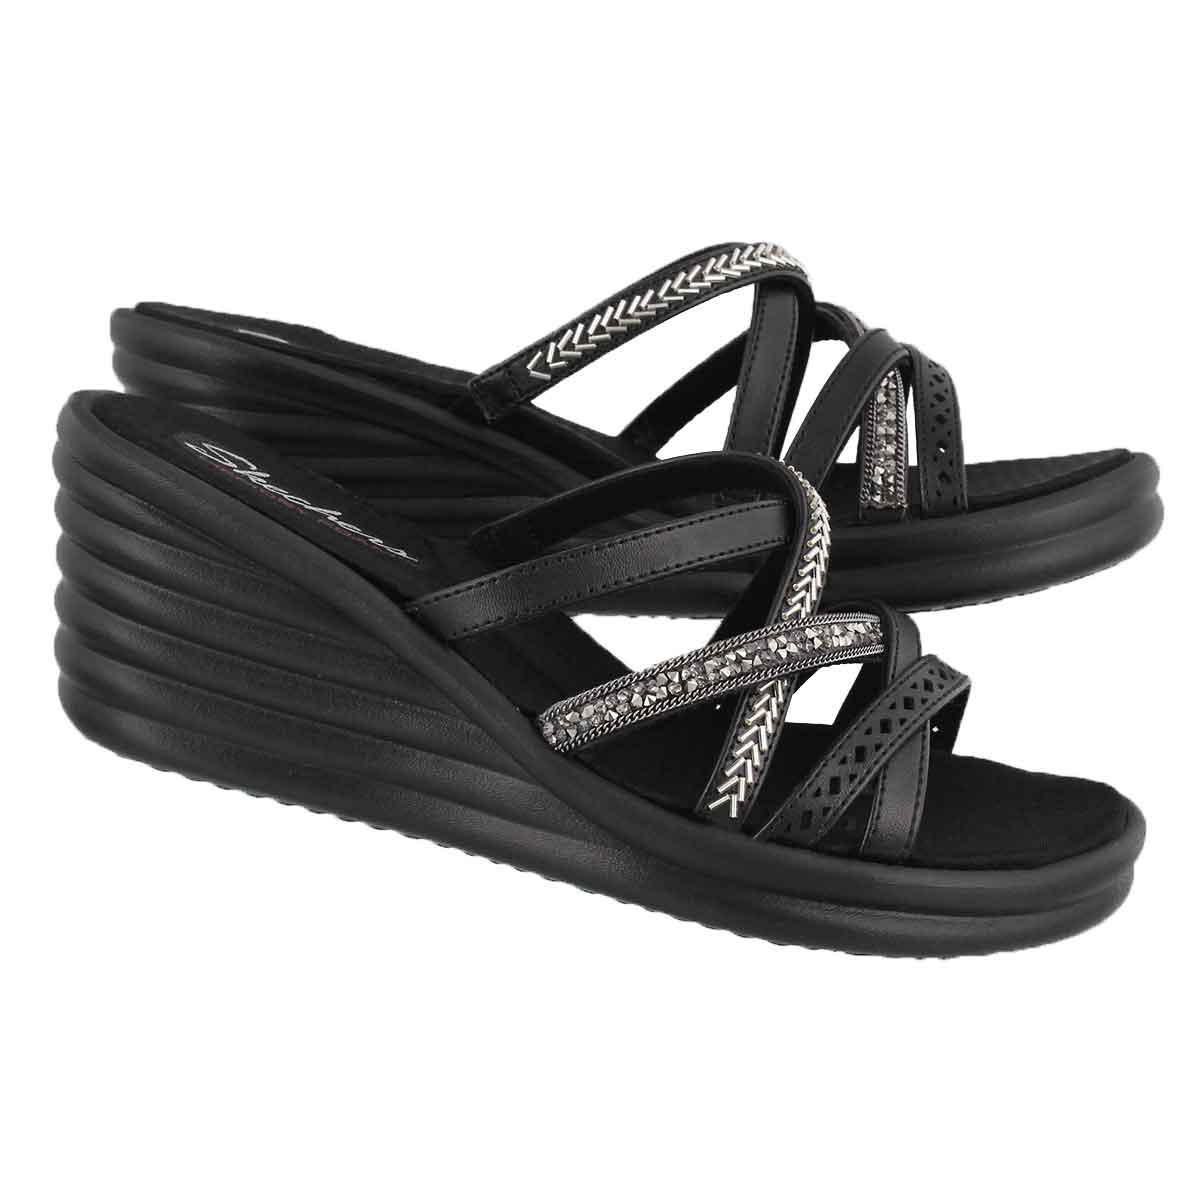 Lds Rumblers Wave New Lassie blk wedge